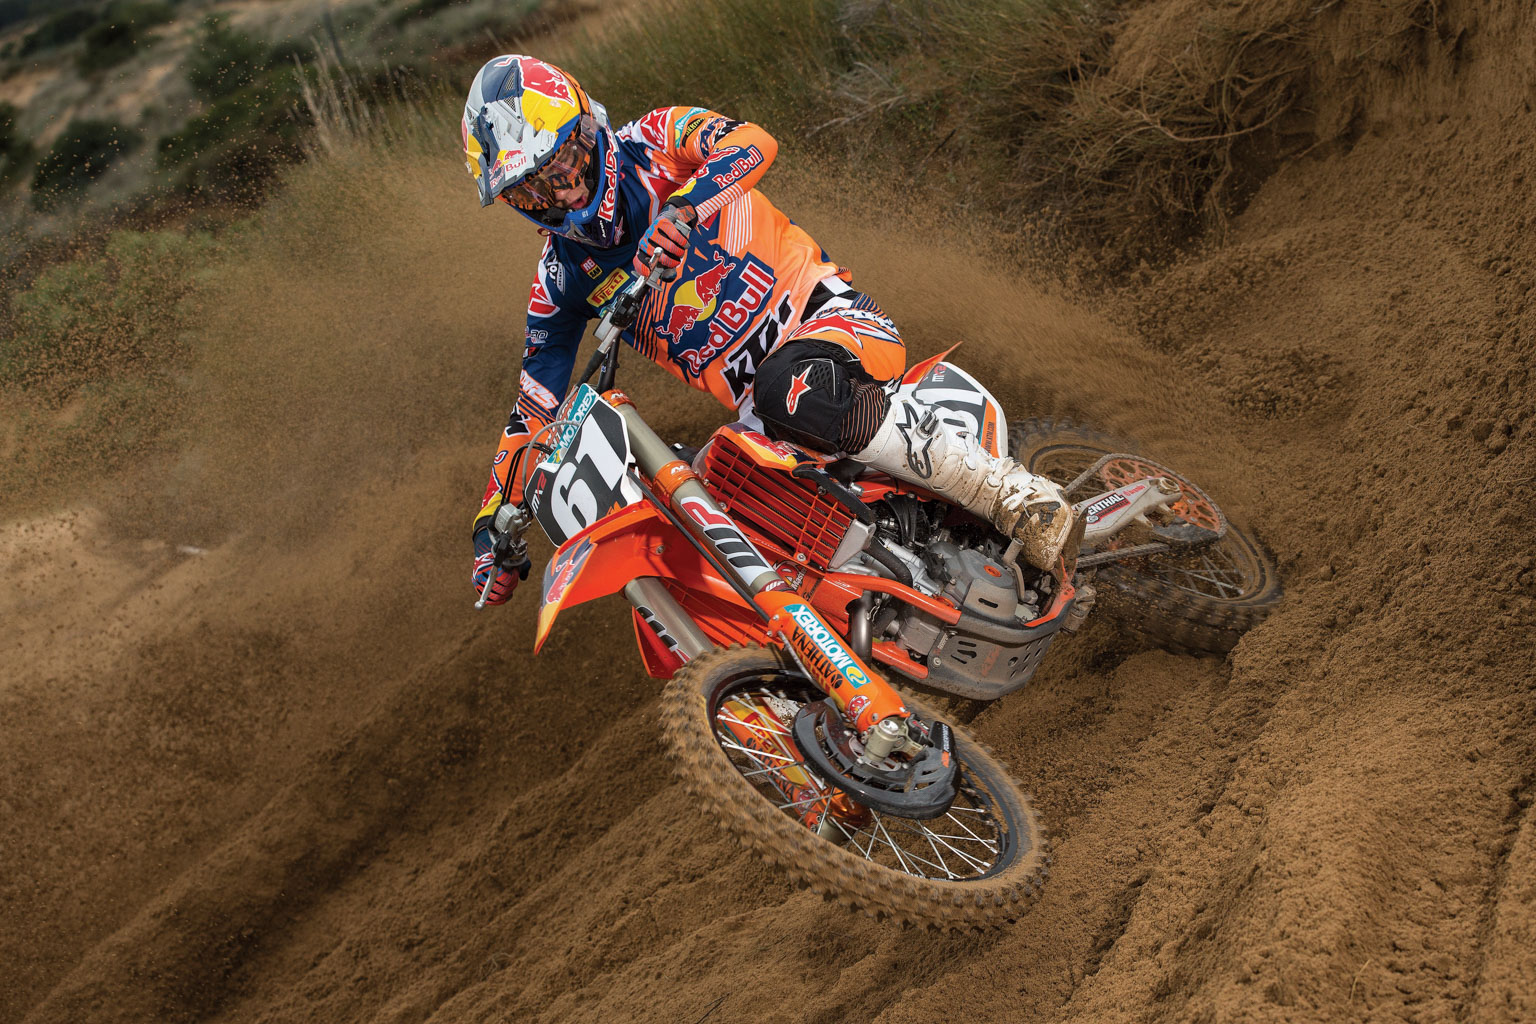 Prado dominated the MX2 race